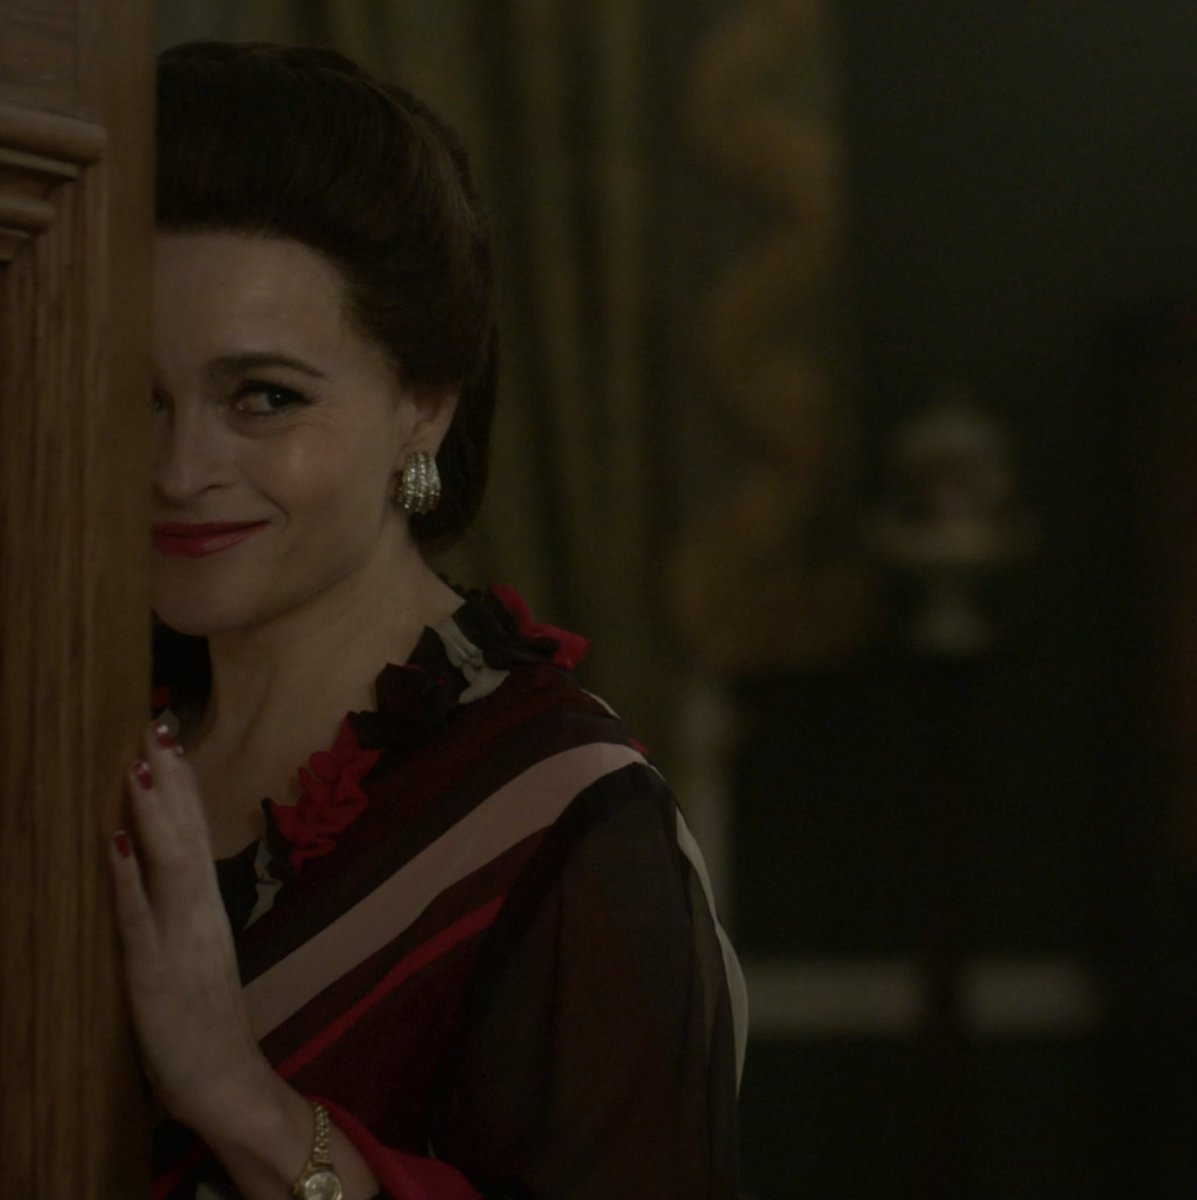 Good morning! Heres Helena Bonham Carter dancing to David Bowie in Season 4 of The Crown. Youre welcome.